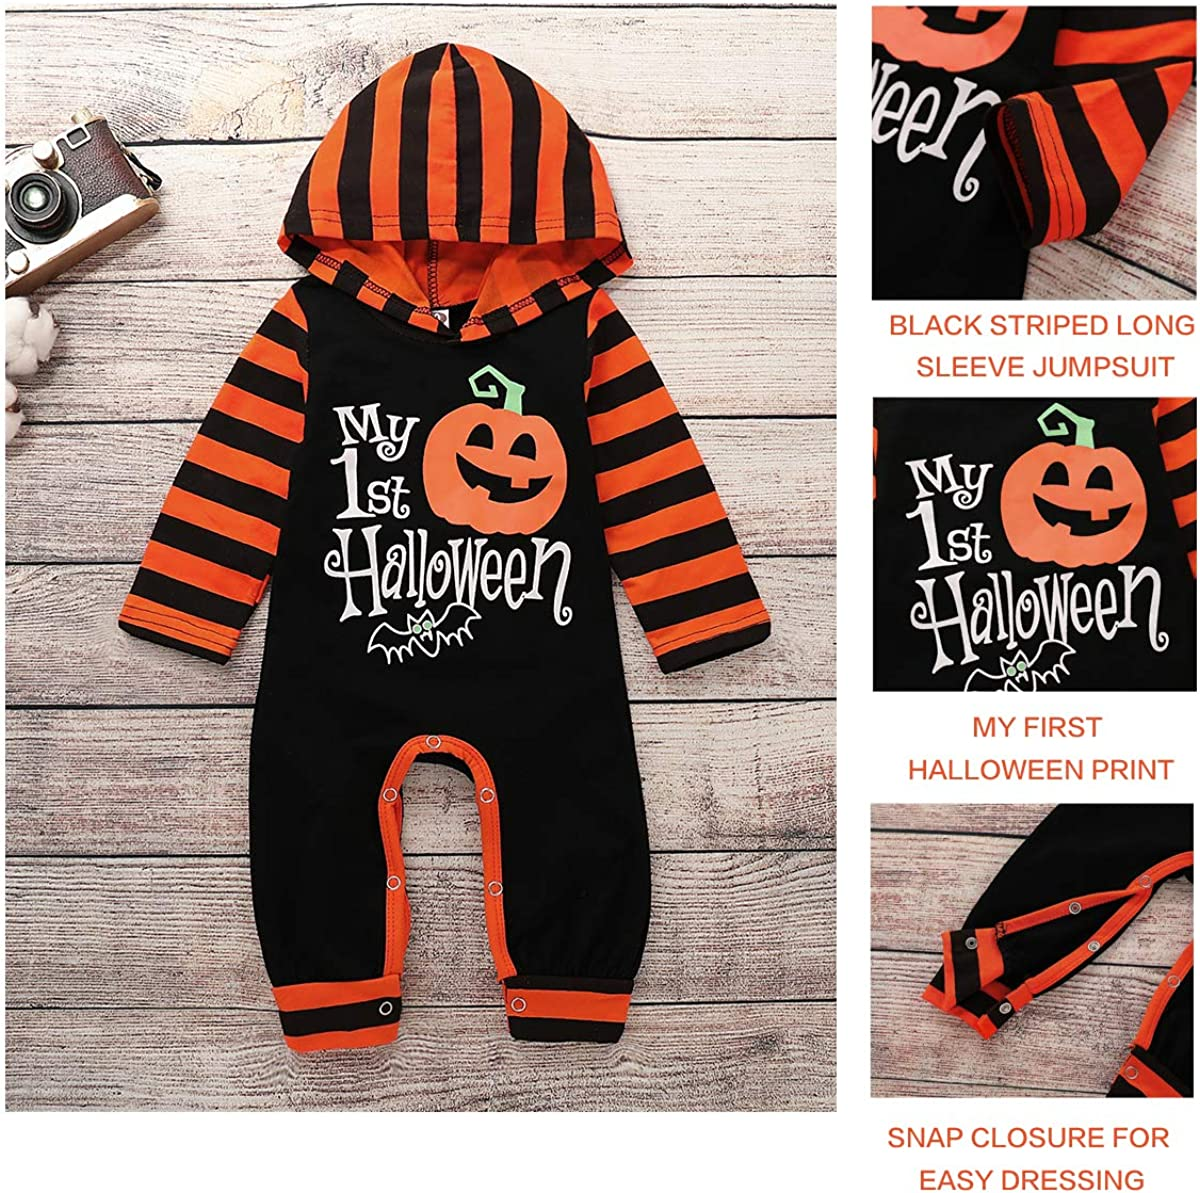 NZRVAWS Infant Baby Boy Jumpsuit My First Halloween Romper One-Piece Long Sleeve Bodysuit Cotton Clothes Outfit